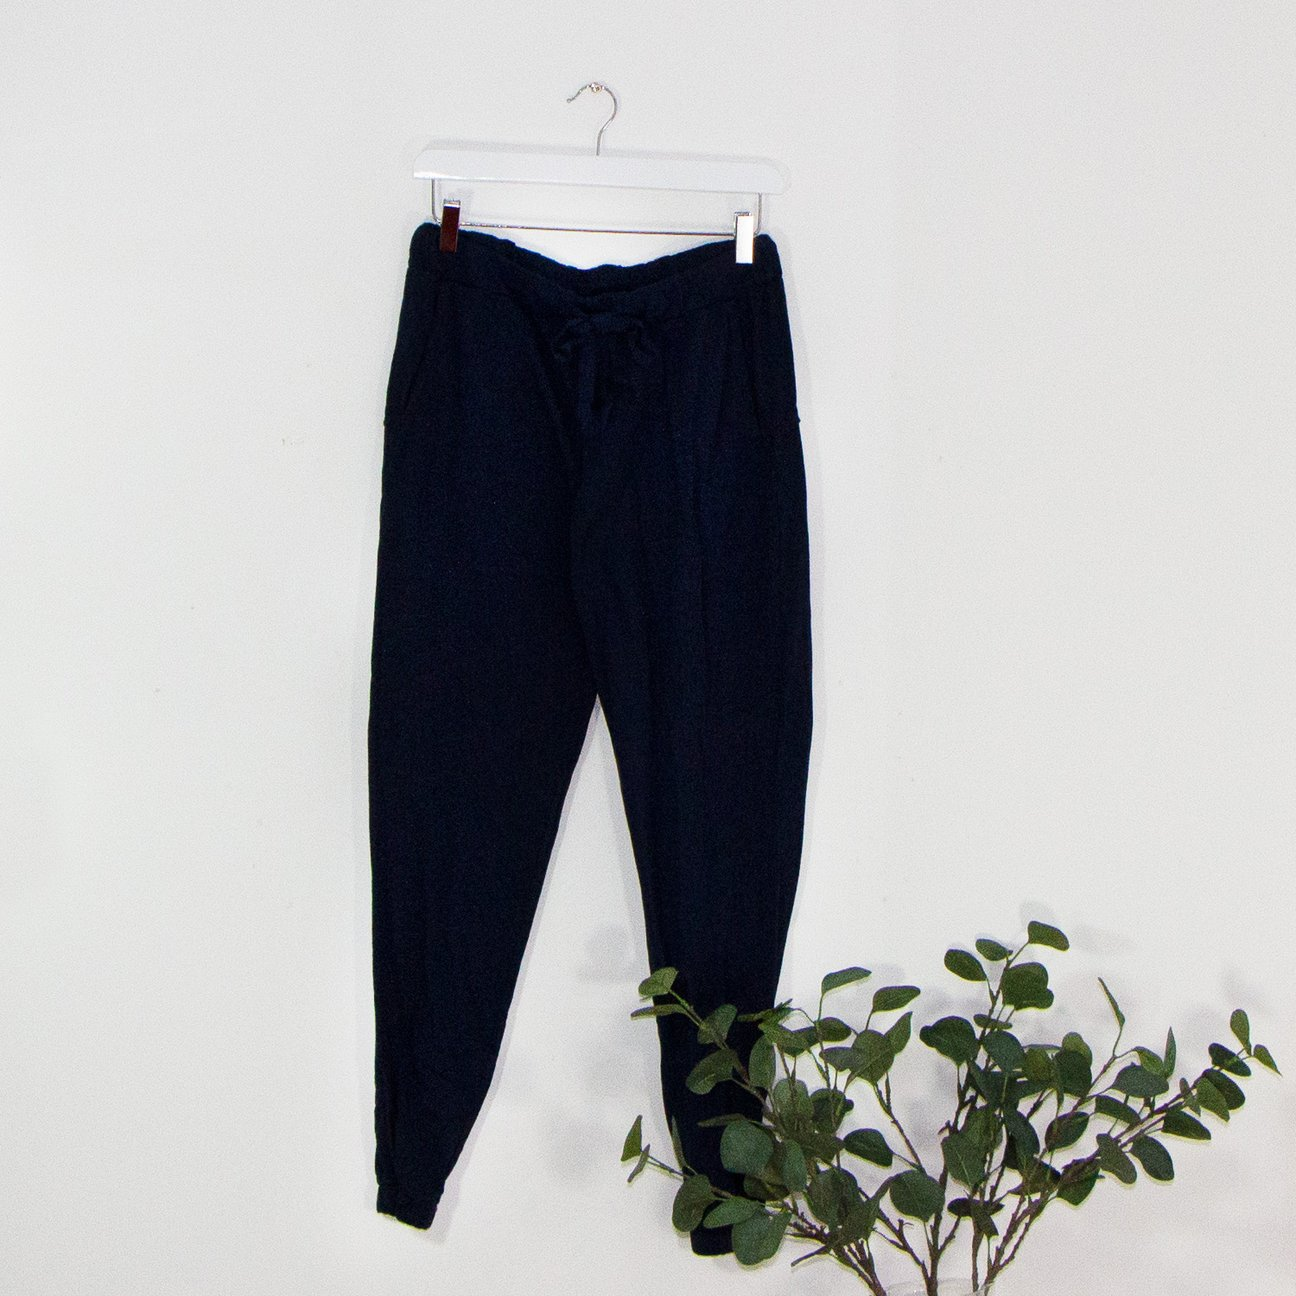 SALE WAS £35 NOW £20 CLASSIC JERSEY JOGGERS WITH DRAWSTRING WAIST